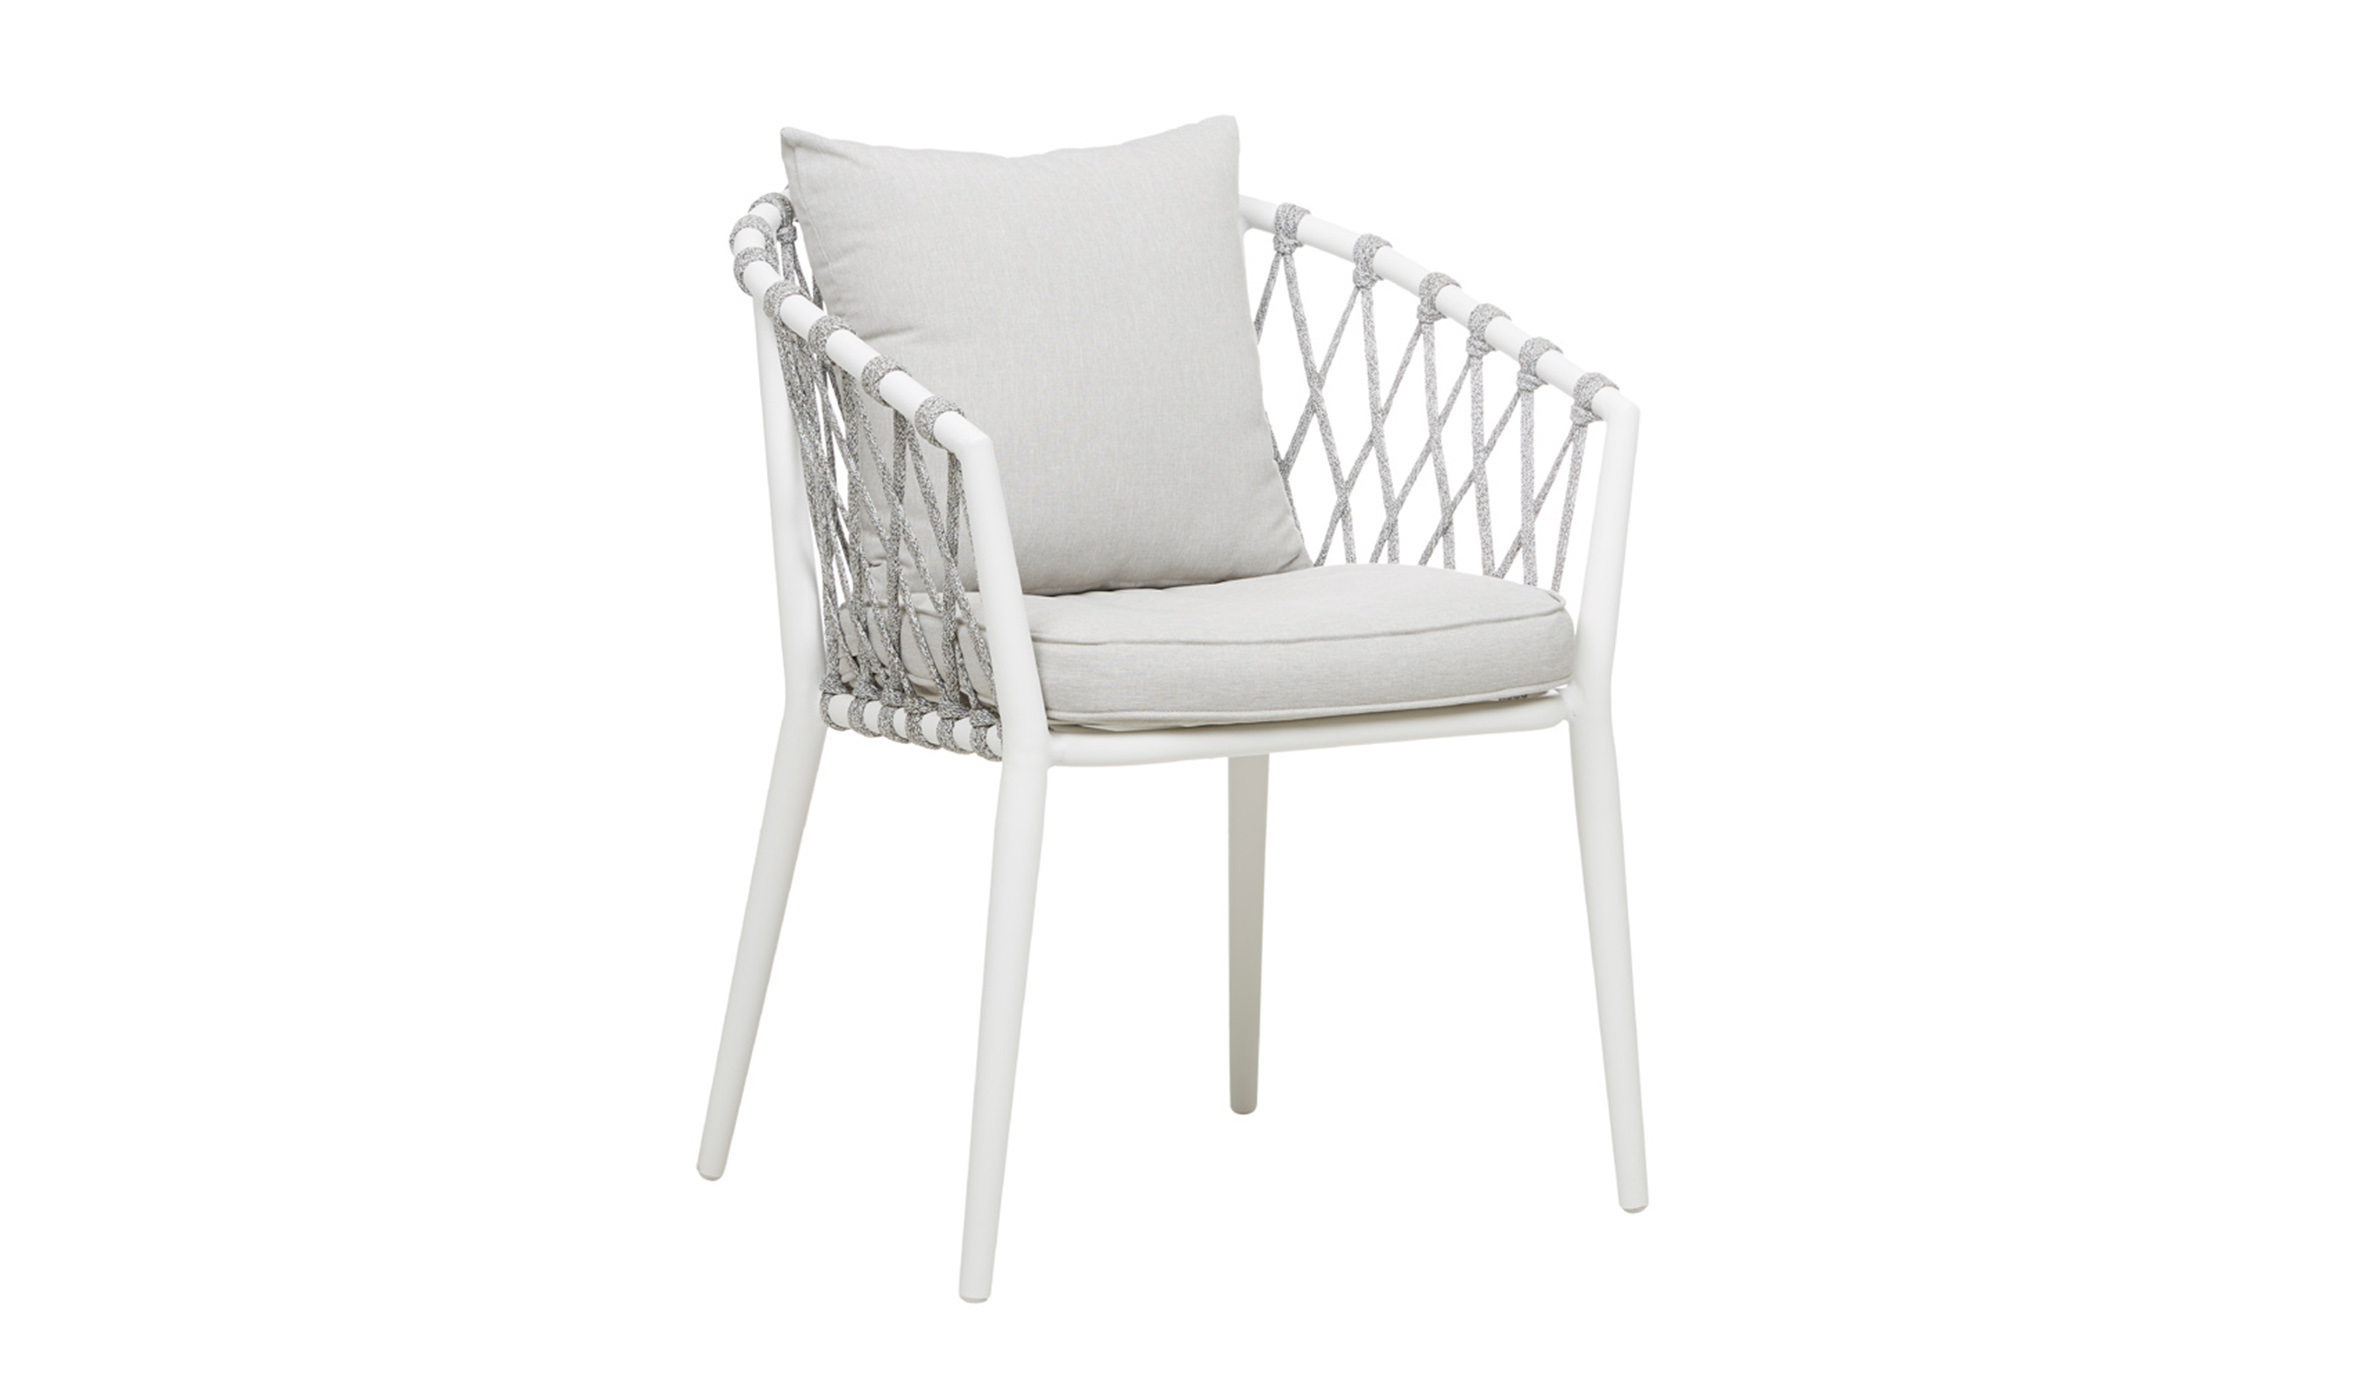 Furniture Thumbnails outdoor-dining-chairs-benches-and-stools-maui-100